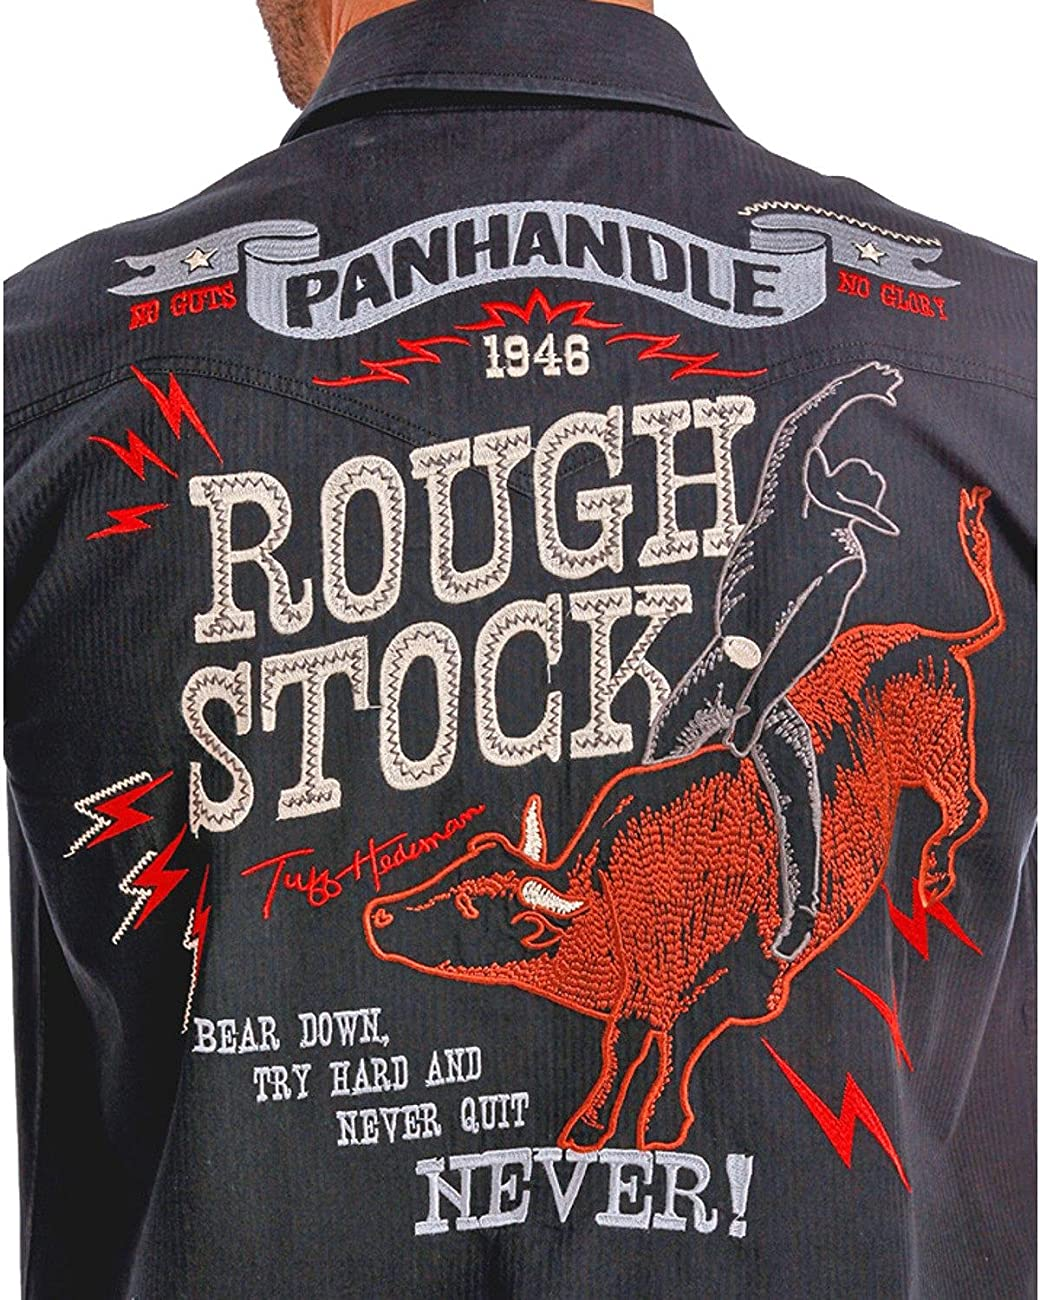 Panhandle Slim Men's Rough Stock By Vintage Bull Rider Logo Western Shirt - R0f9267-01 1